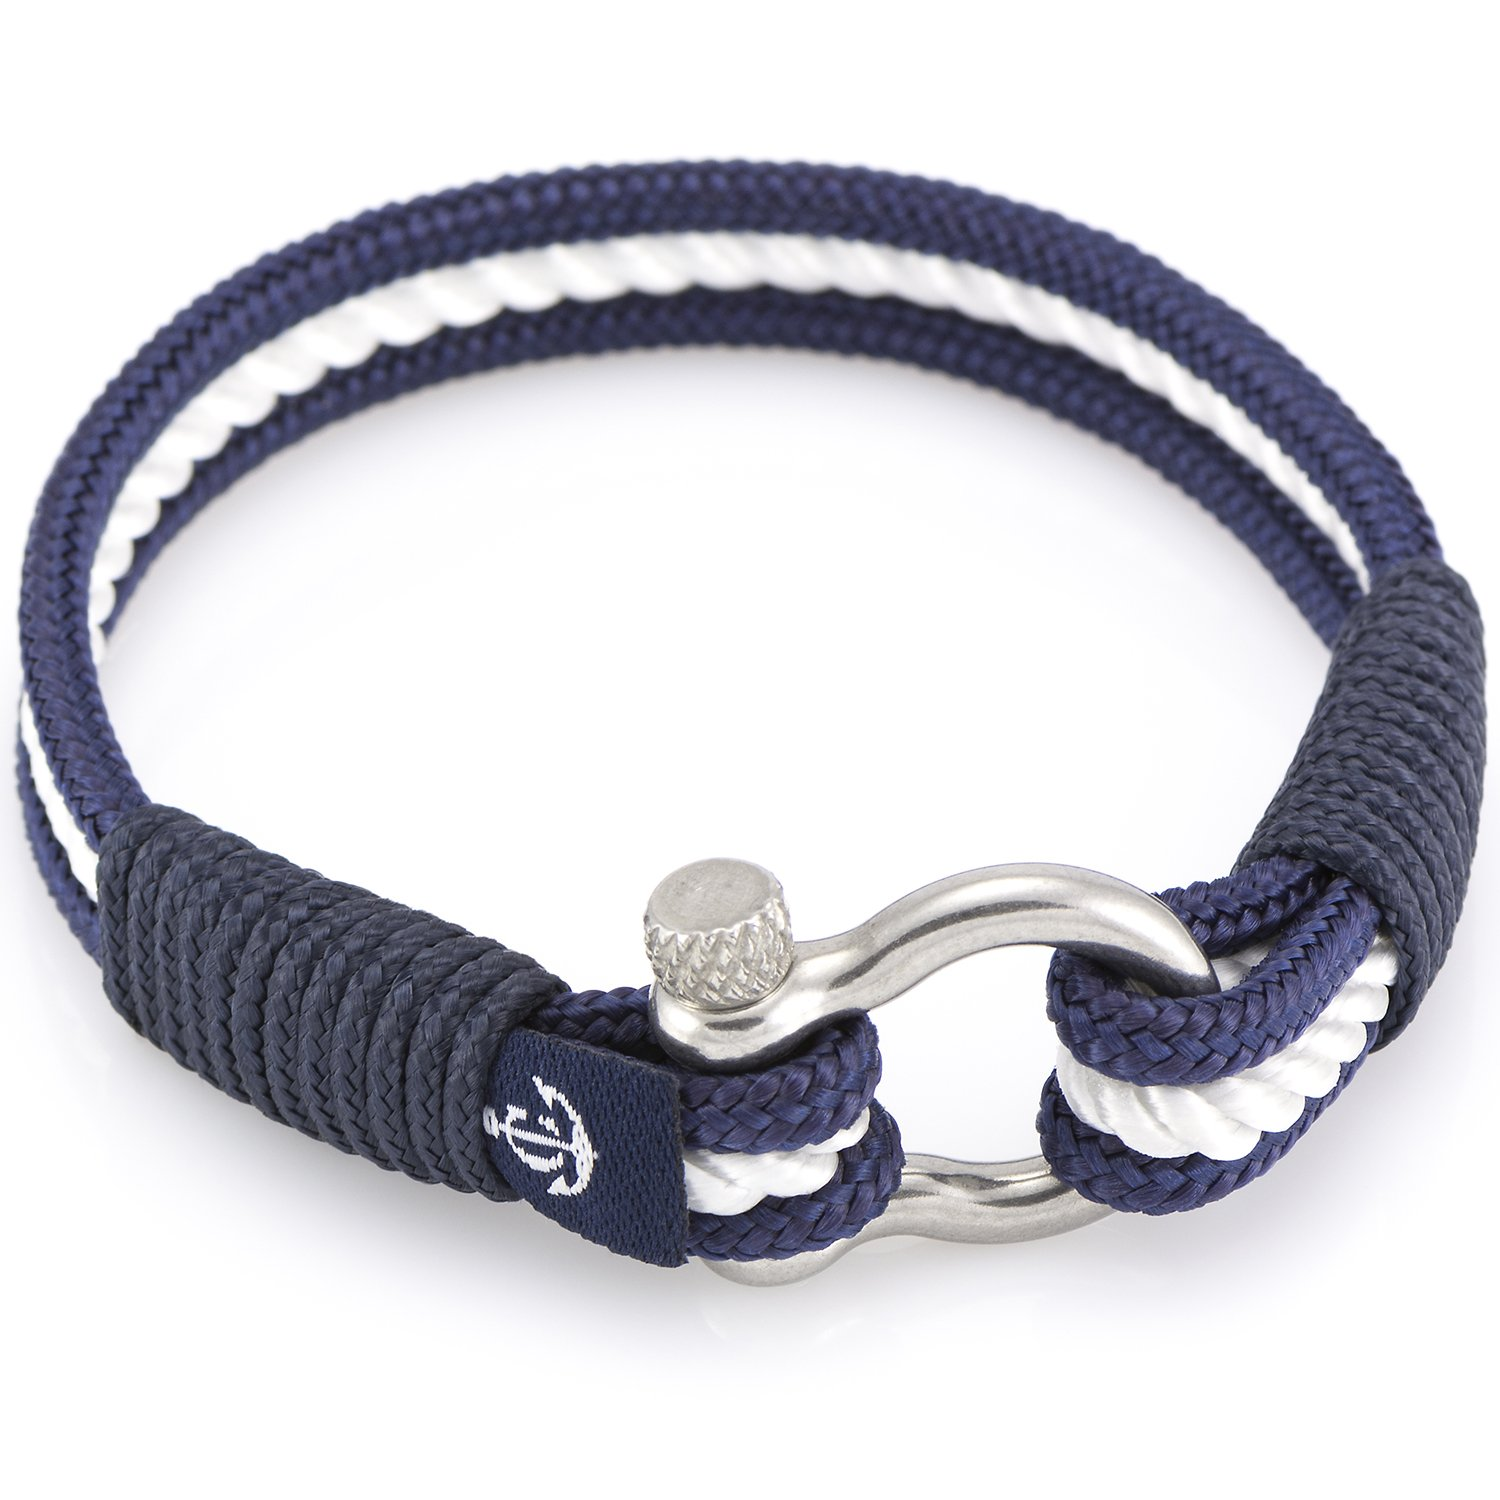 paracord bracelet arresting braided p womens women nautical rope for